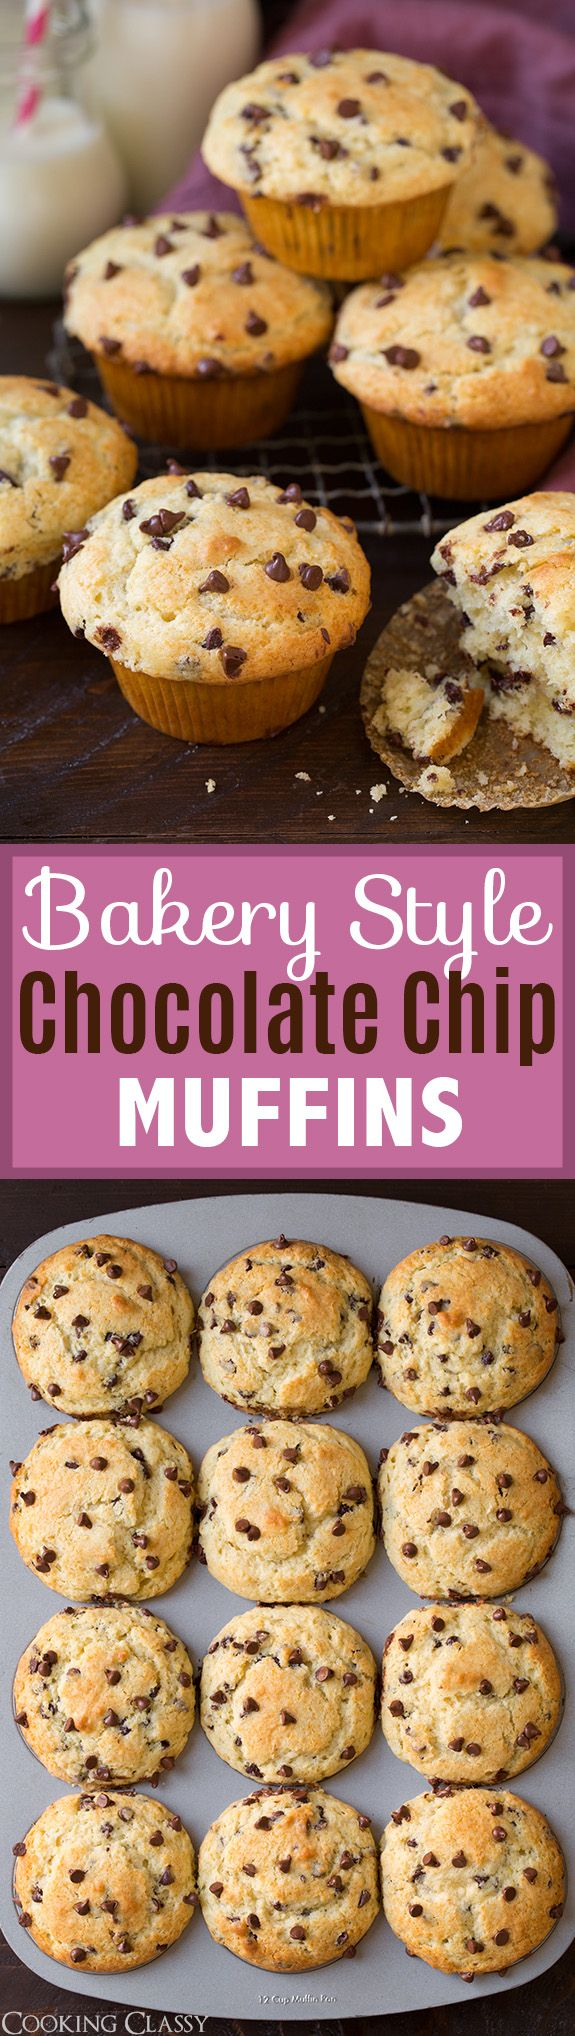 Things that look good to eat: Bakery Style Chocolate Chip Muffins - Cooking Clas...